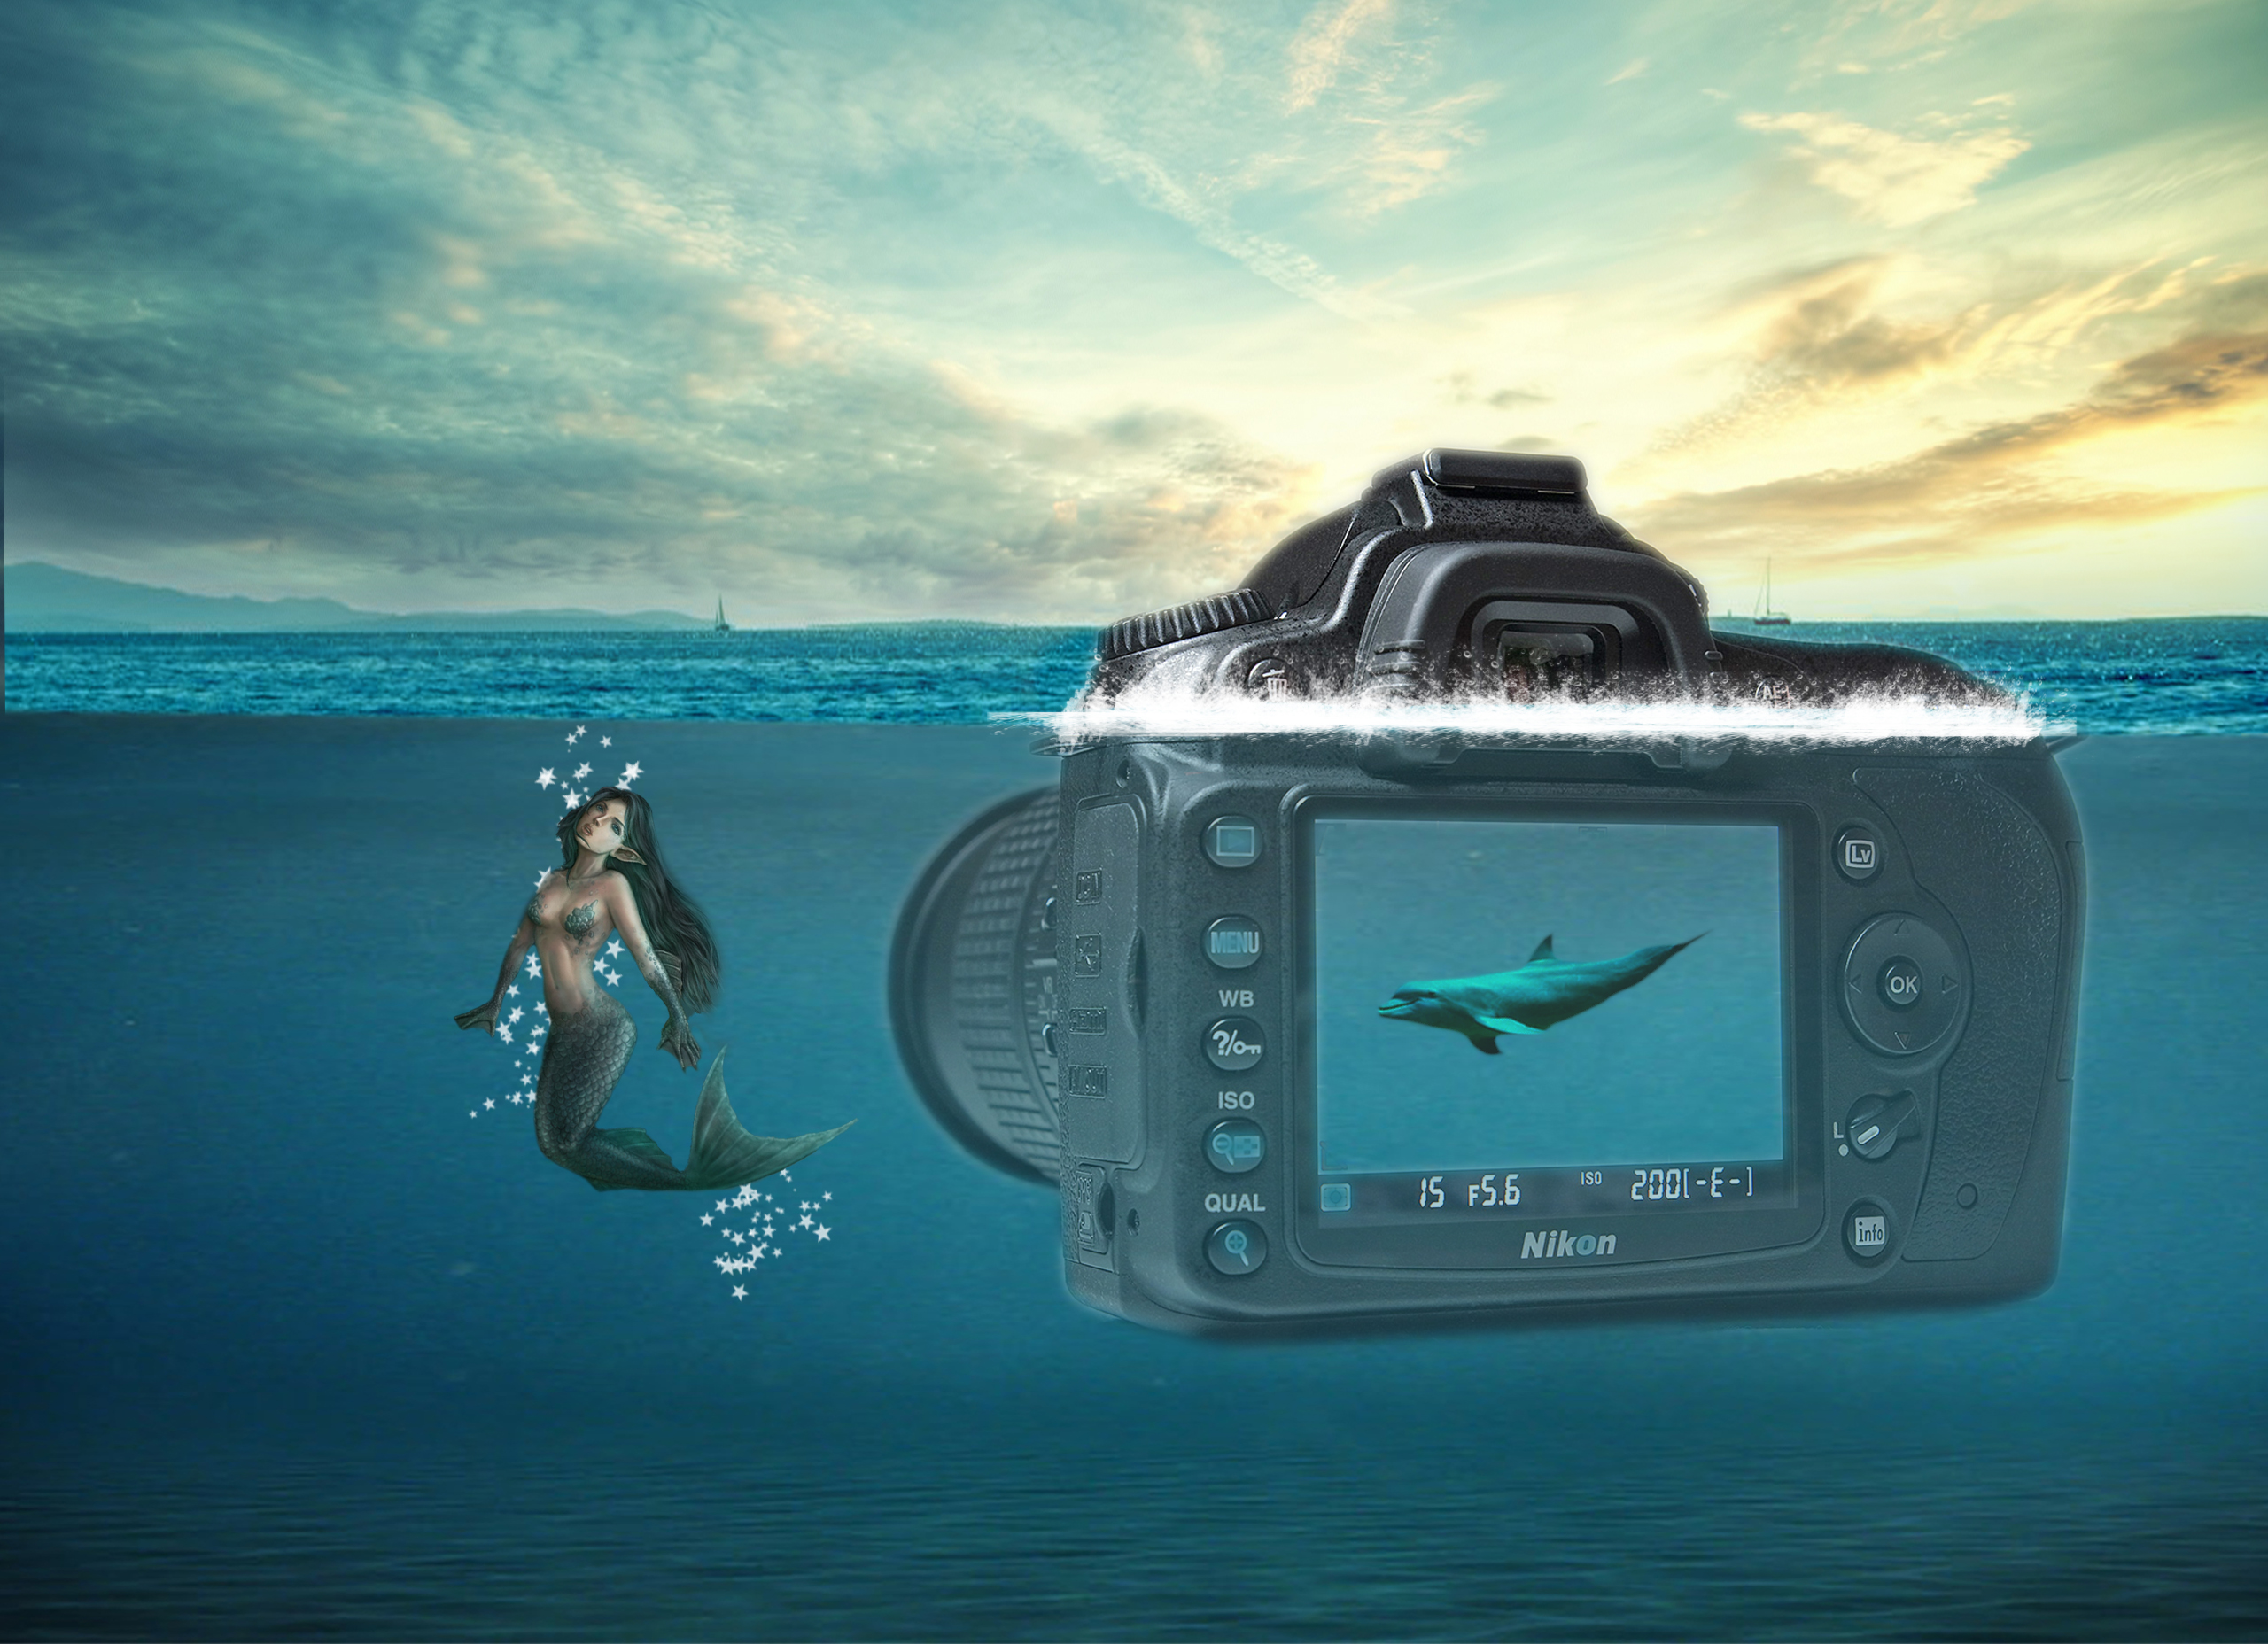 Mermaid camera dolphin